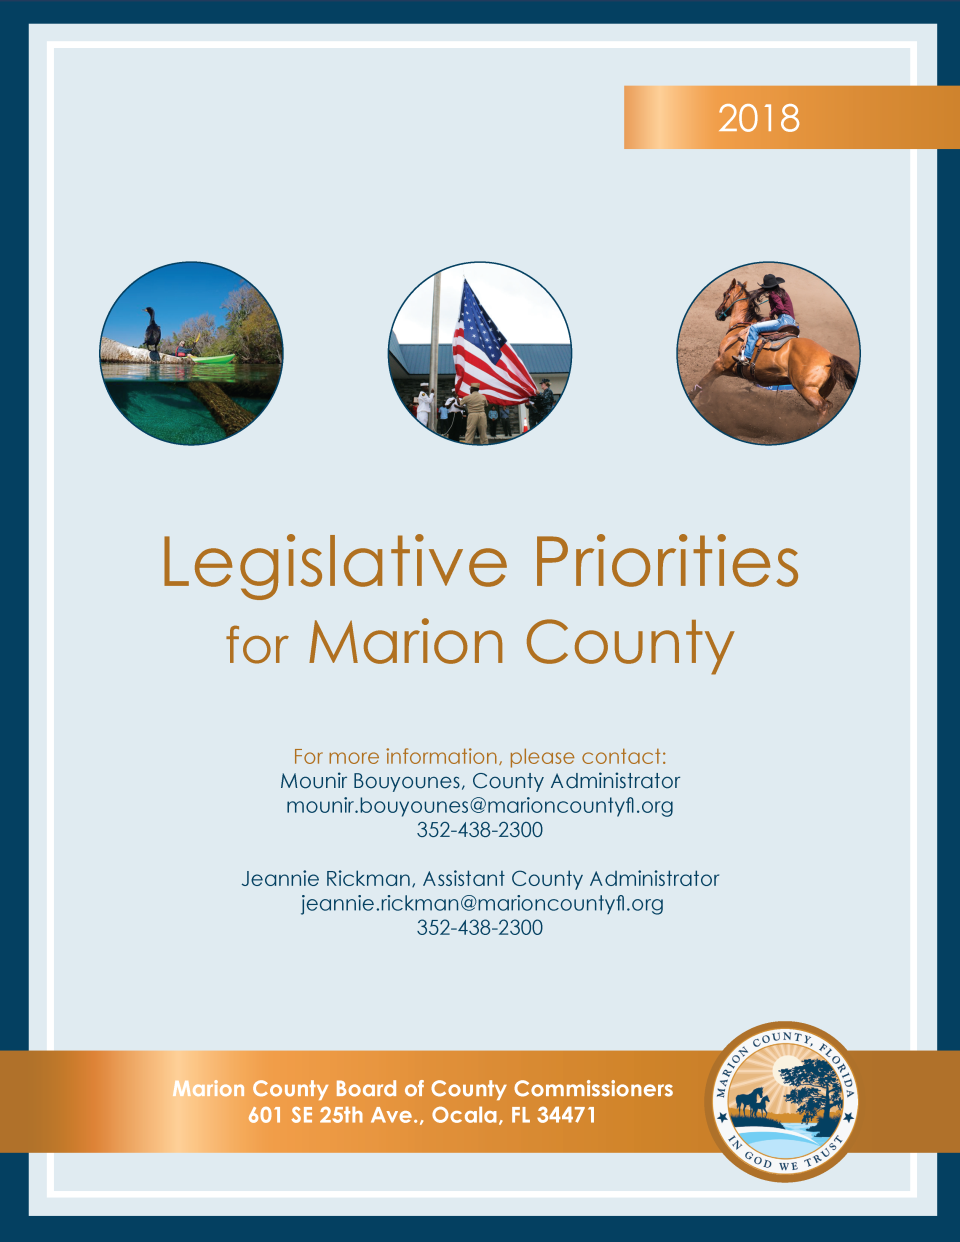 2018 Legislative priorities COVER